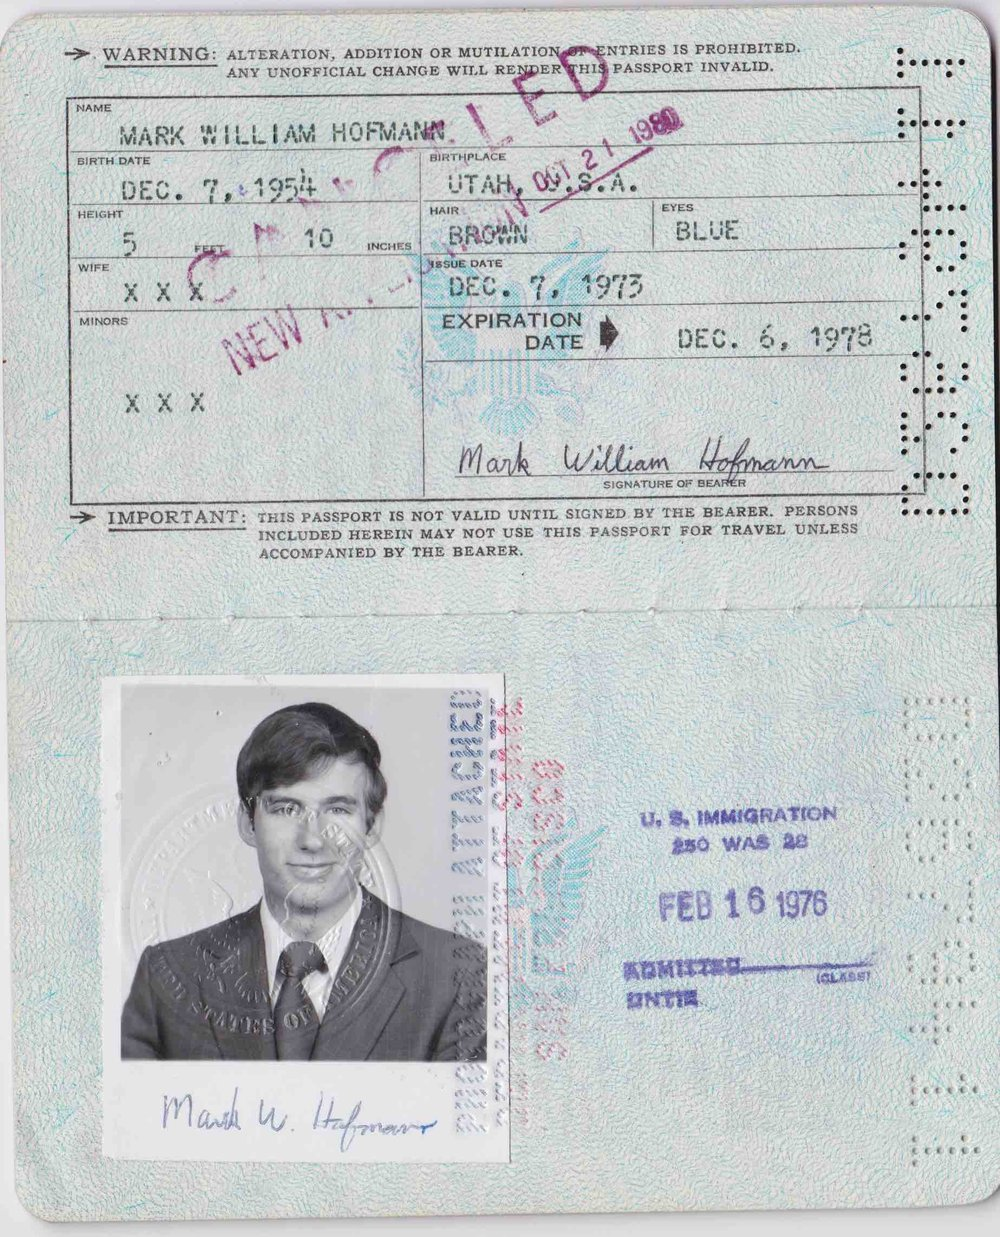 Mark Hofmann's passport